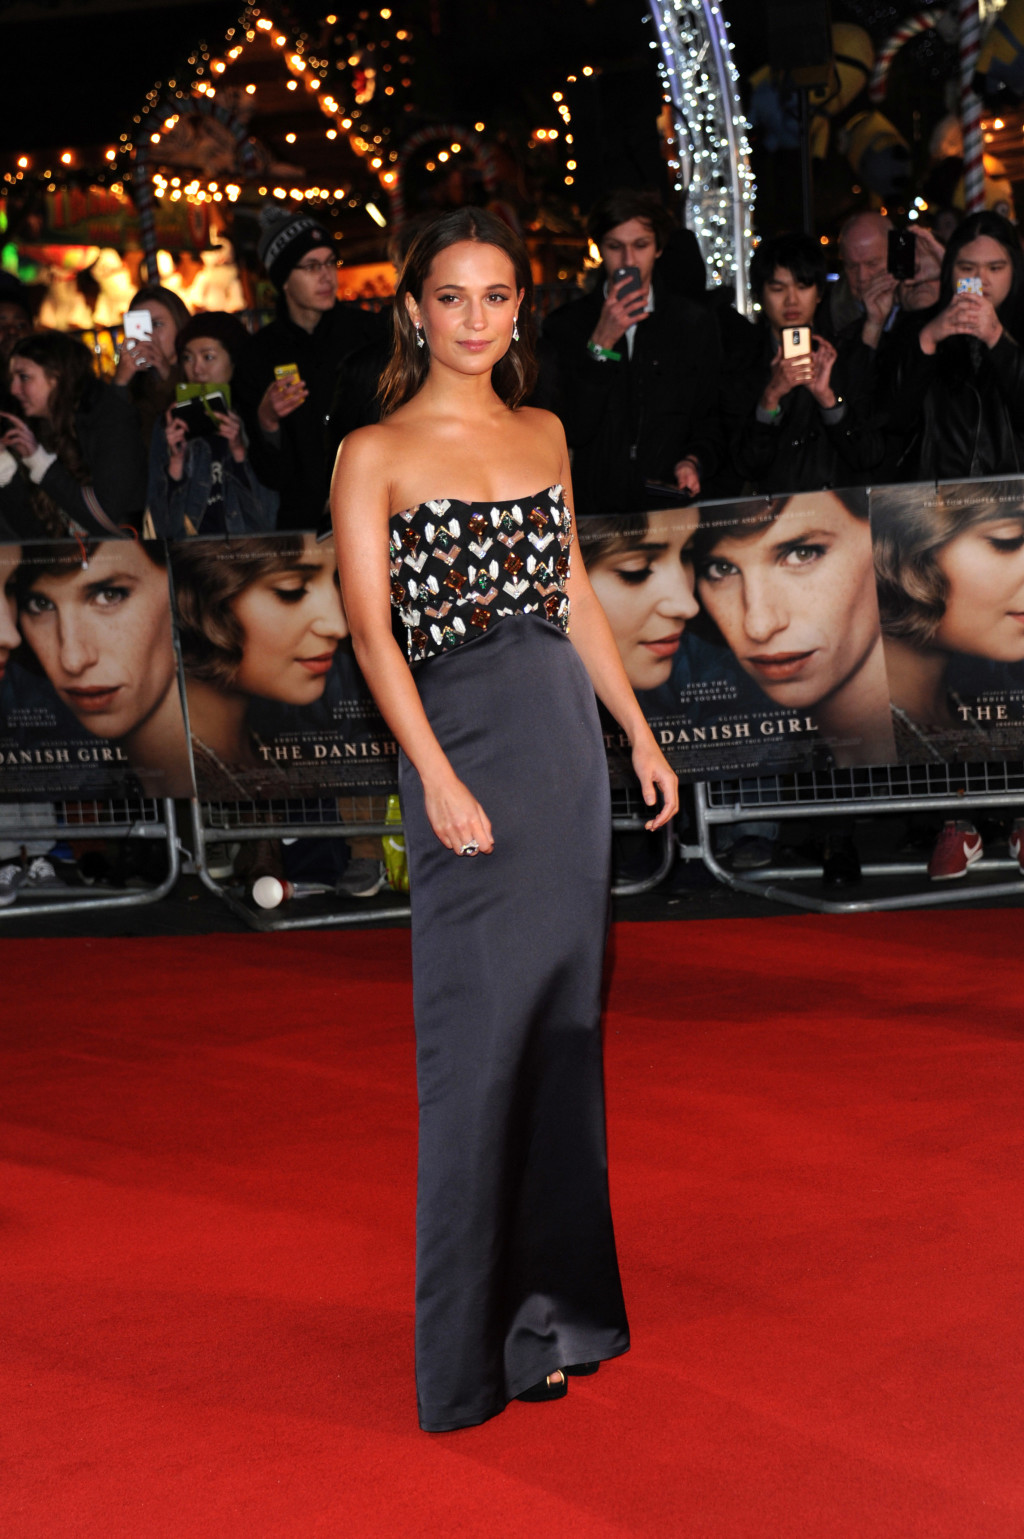 Alicia Vikander wearing an embellished Louis Vuitton column gown at the The Danish Girl premiere